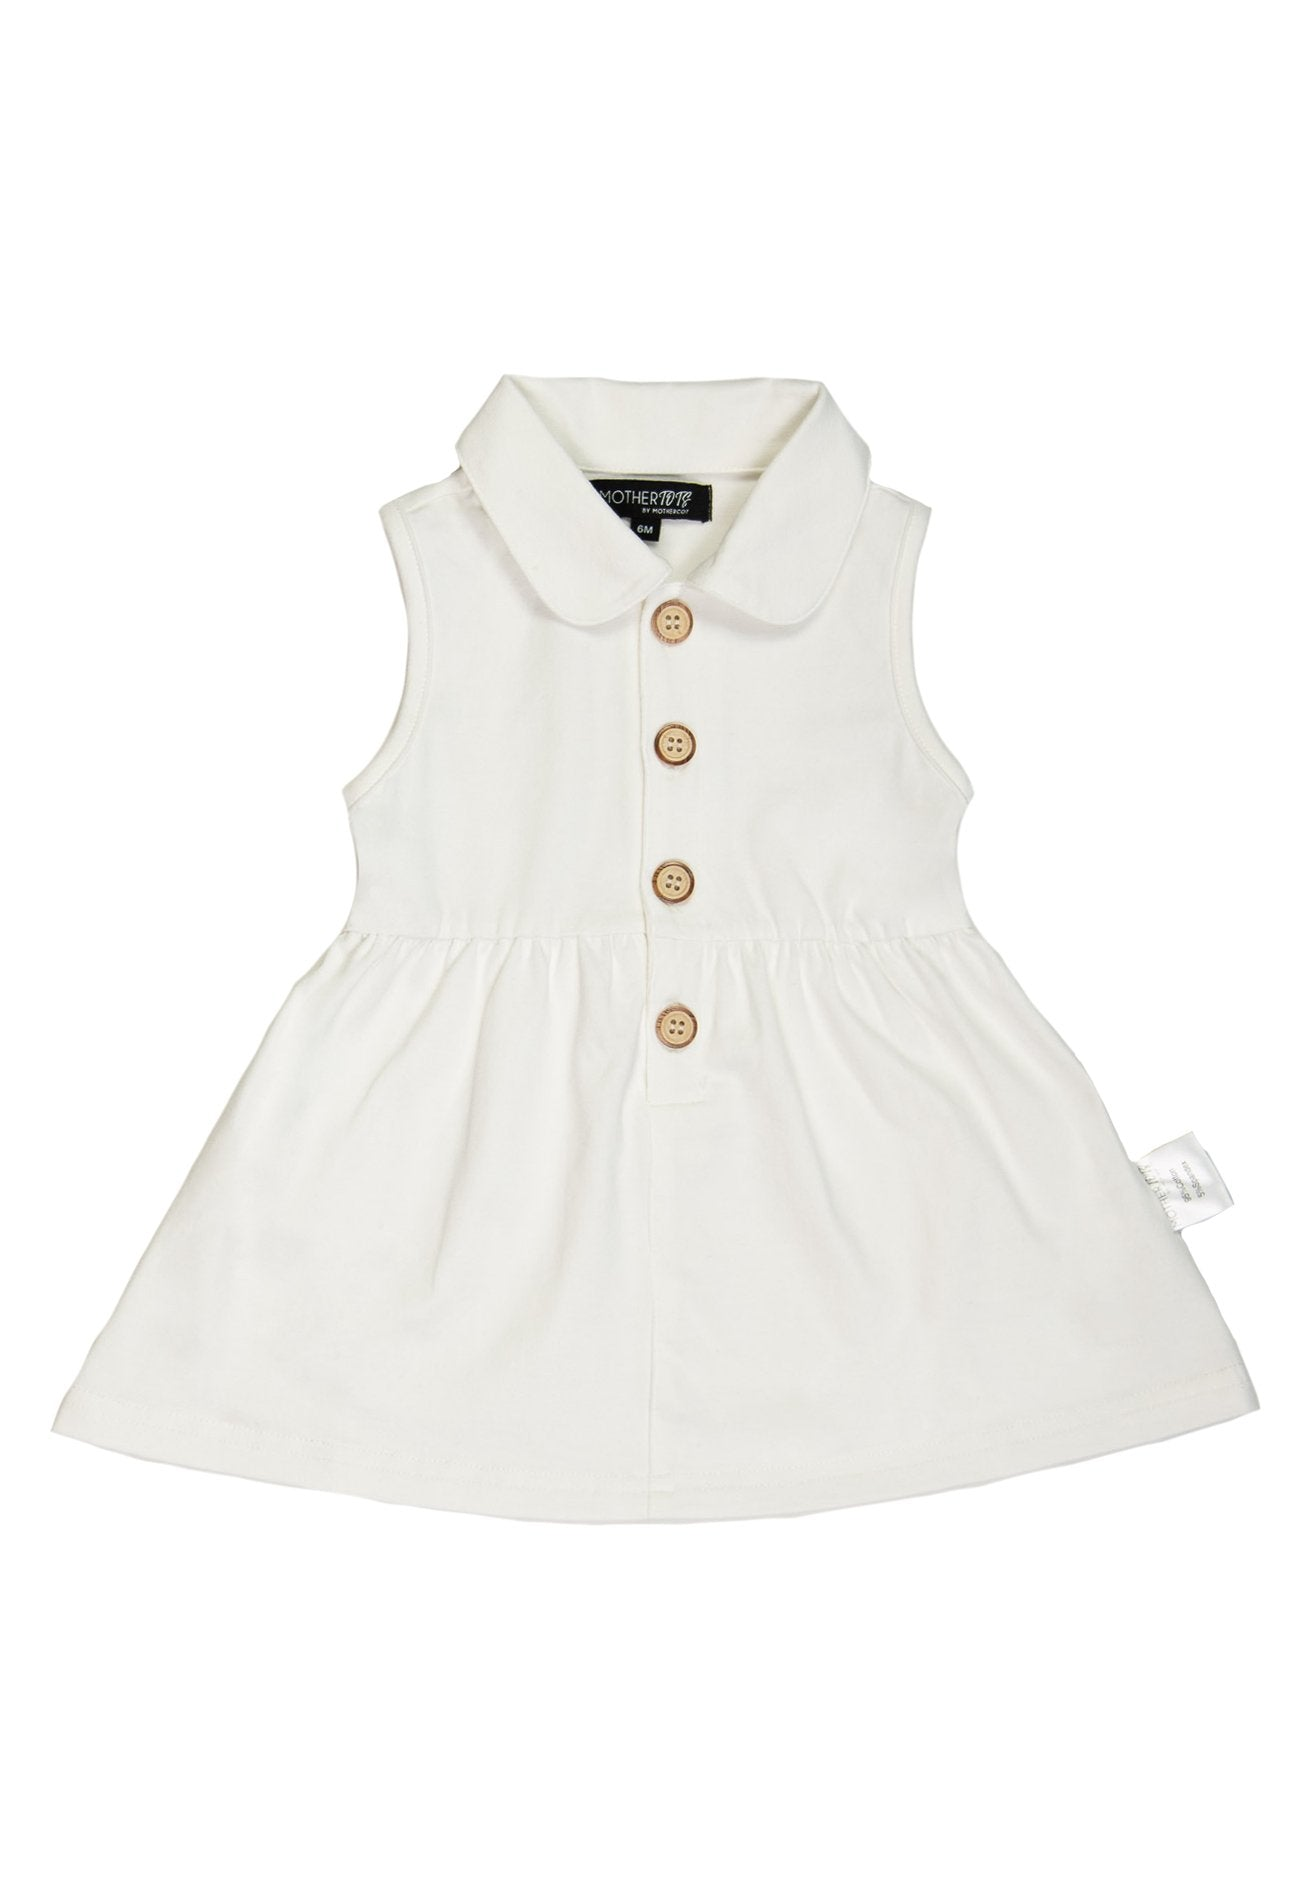 See The Good Girl Dress Matching Sets Mothertots